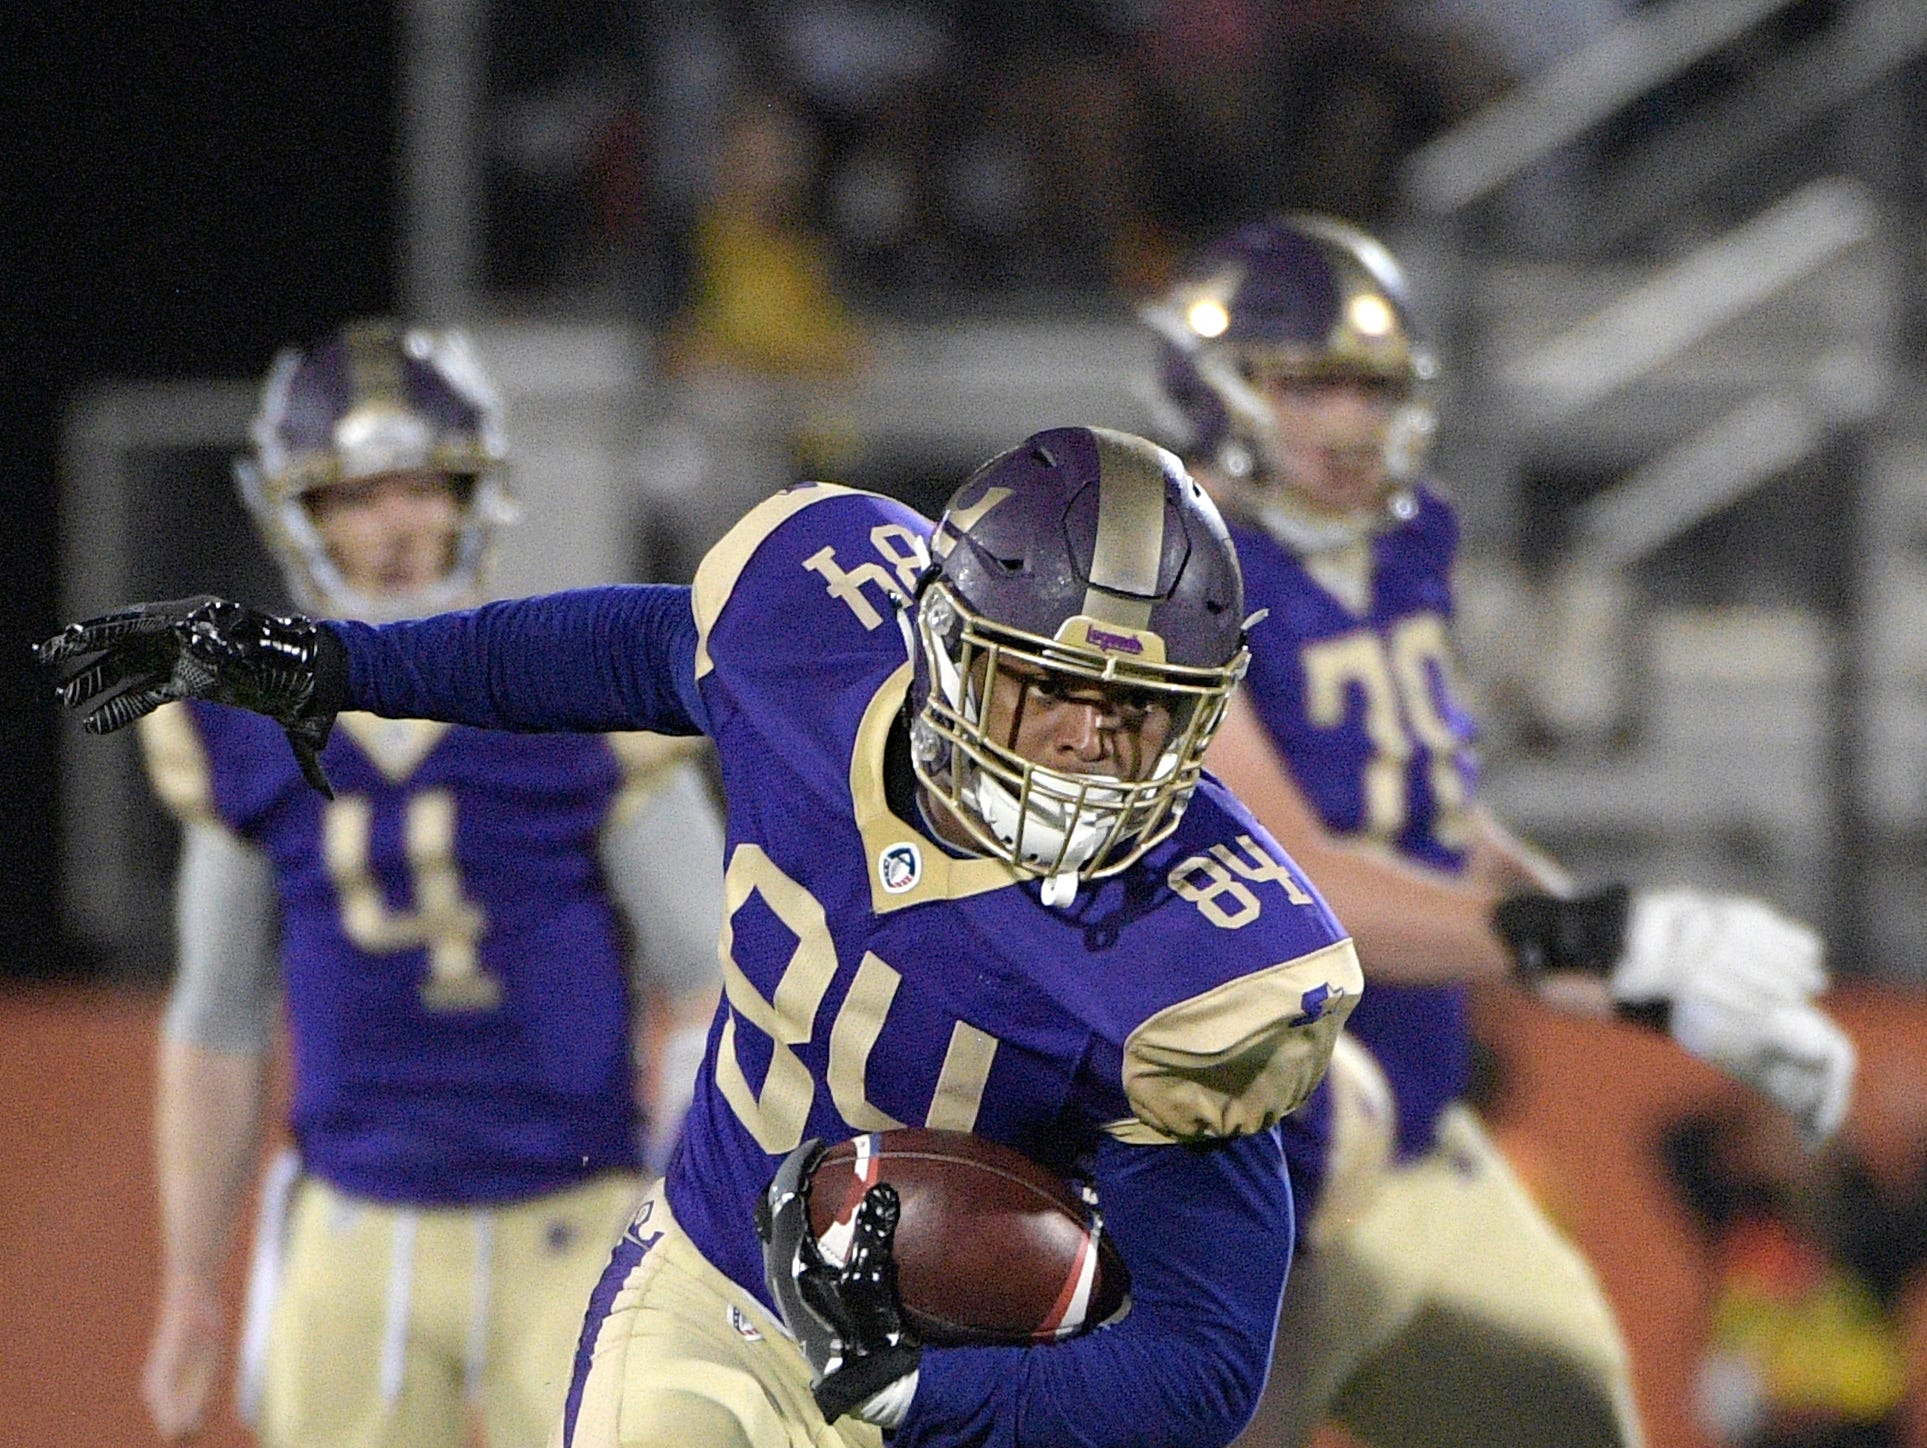 Atlanta Legends receiver Bug Howard (84) runs after catching a pass during the first half of an Alliance of American Football game against the Orlando Apollos on Saturday, Feb. 9, 2019, in Orlando, Fla. (AP Photo/Phelan M. Ebenhack)